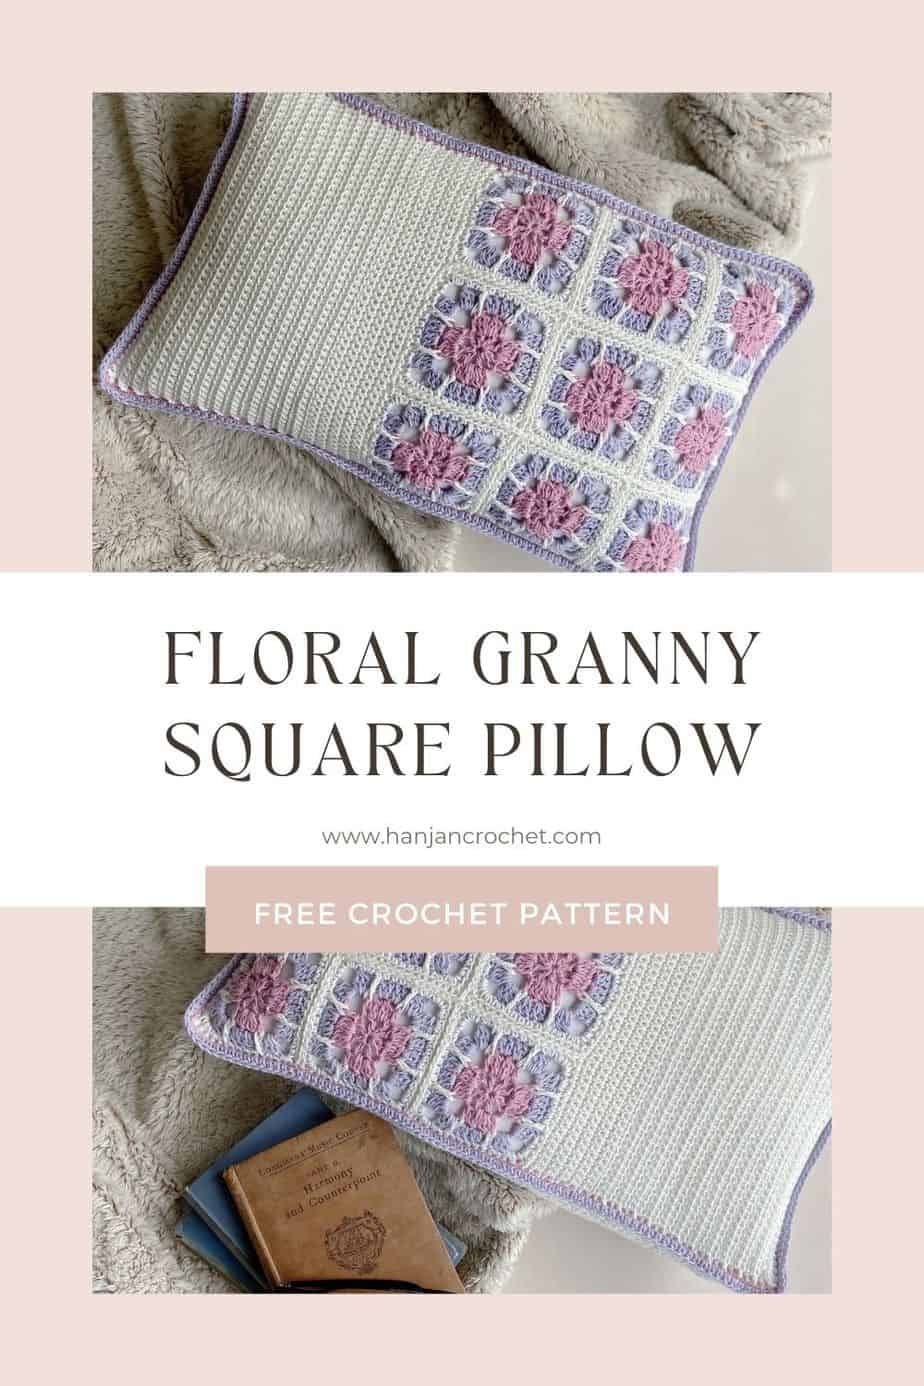 images of floral crochet granny square cushion on fluffy blanket